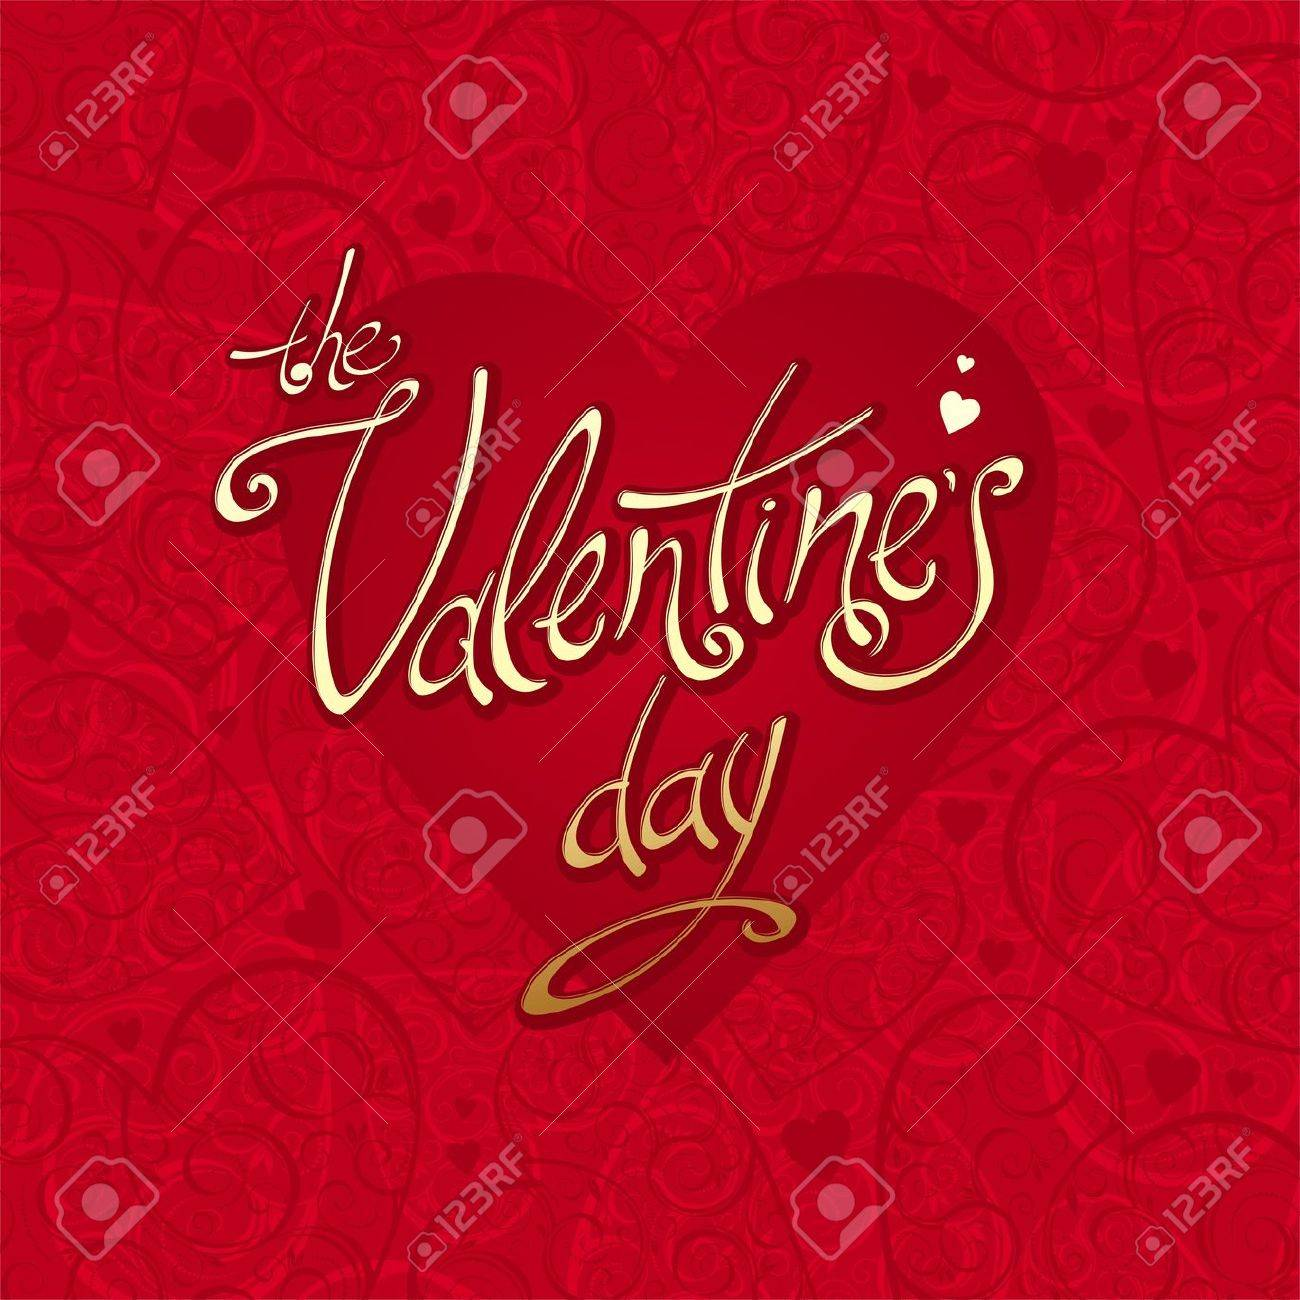 Valentines vector card with hearts background & calligraphy Stock Vector - 9945423